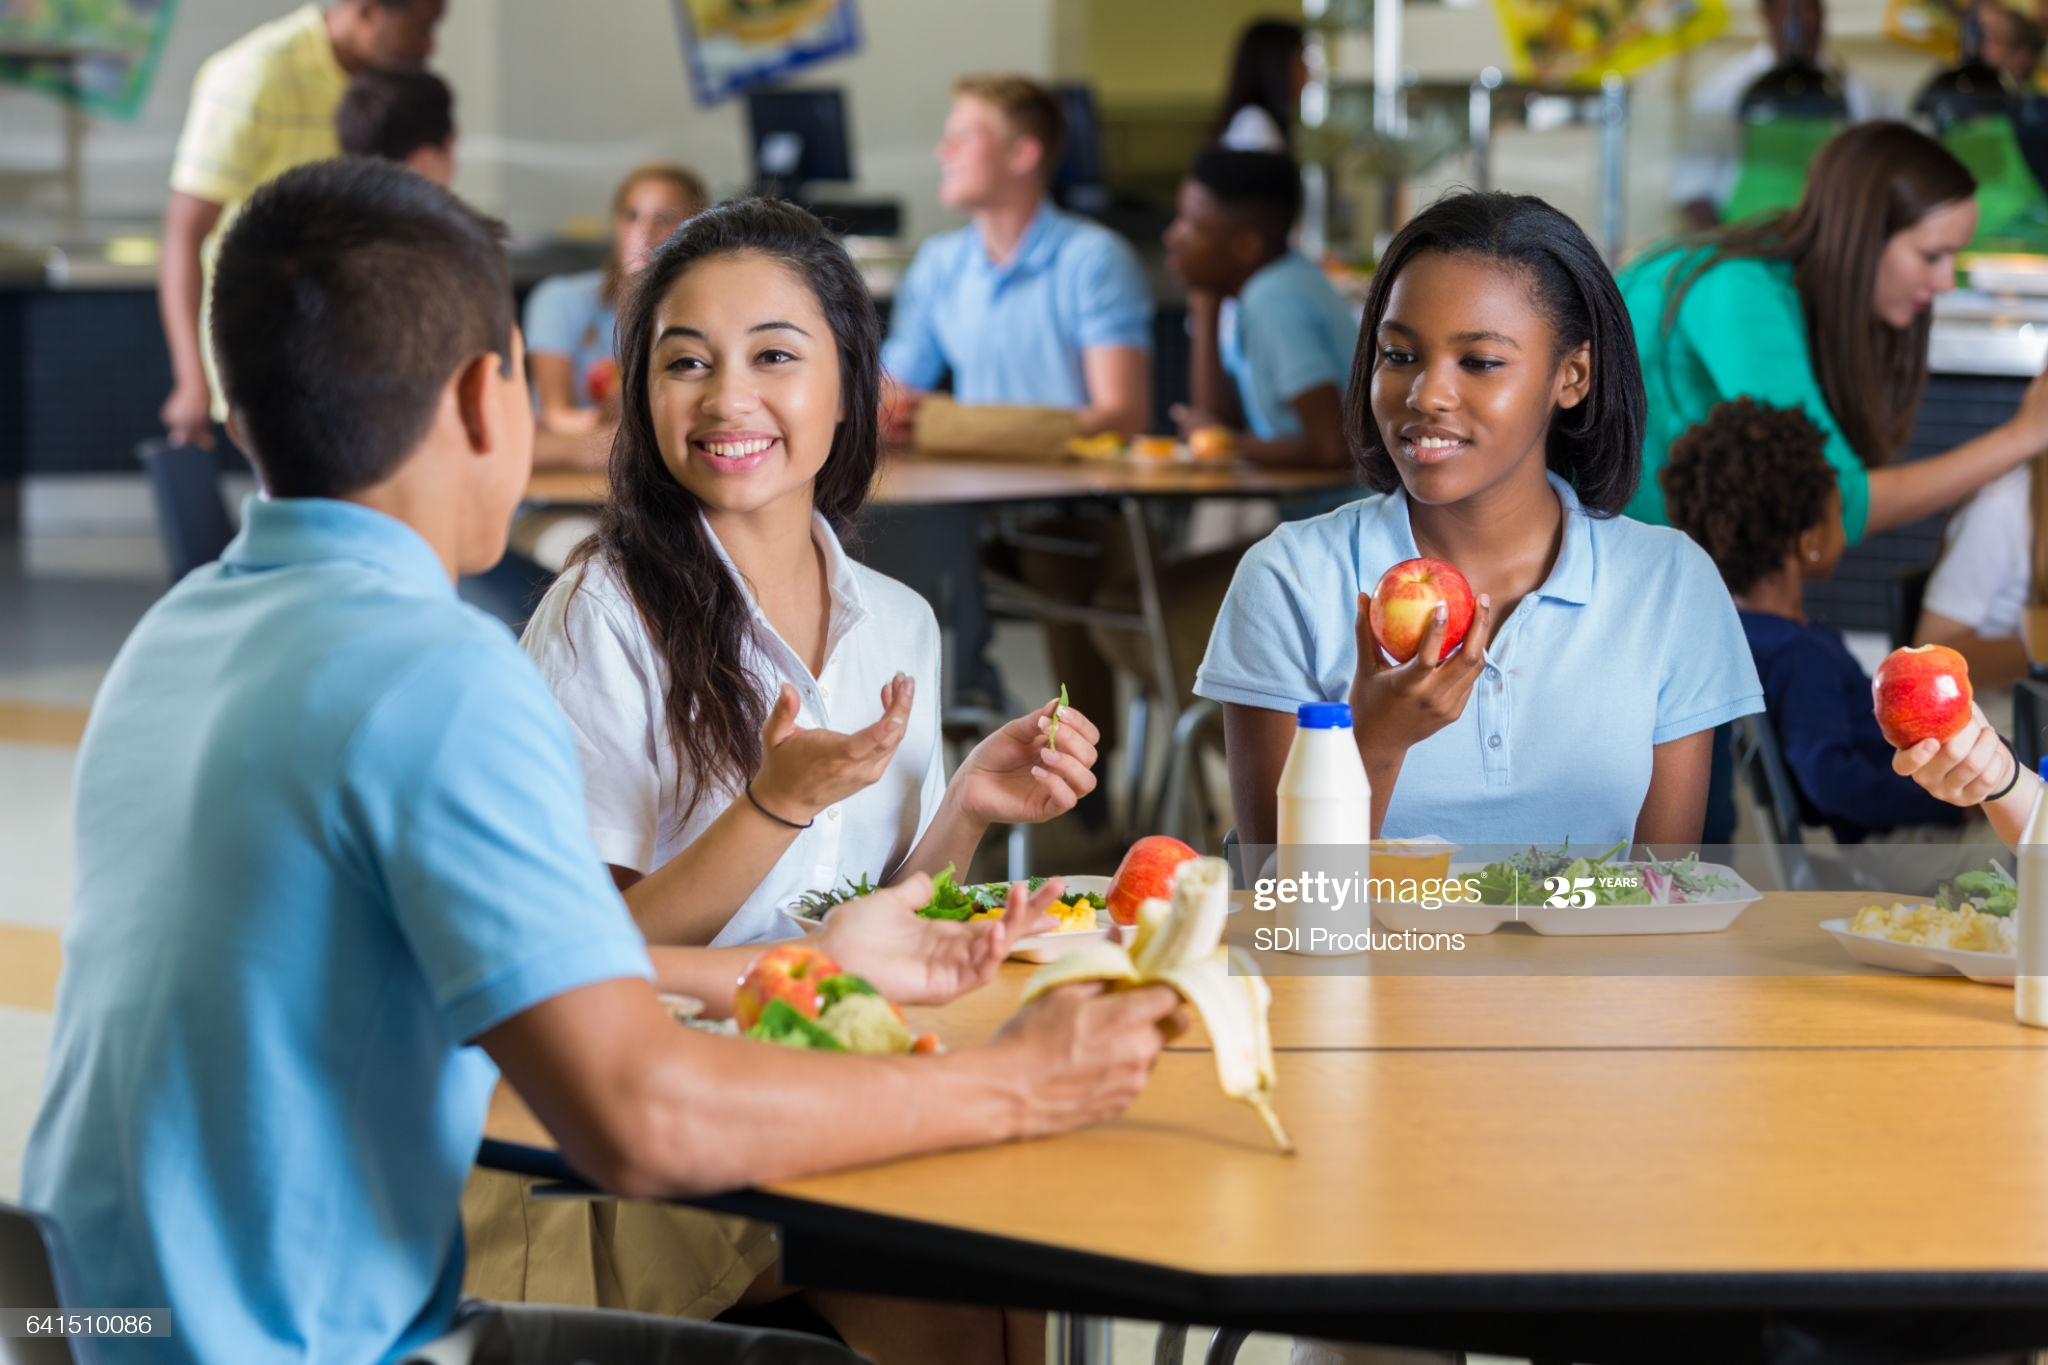 Male and female teenagers enjoy eating lunch together in the school cafeteria. They are wearing school uniforms.